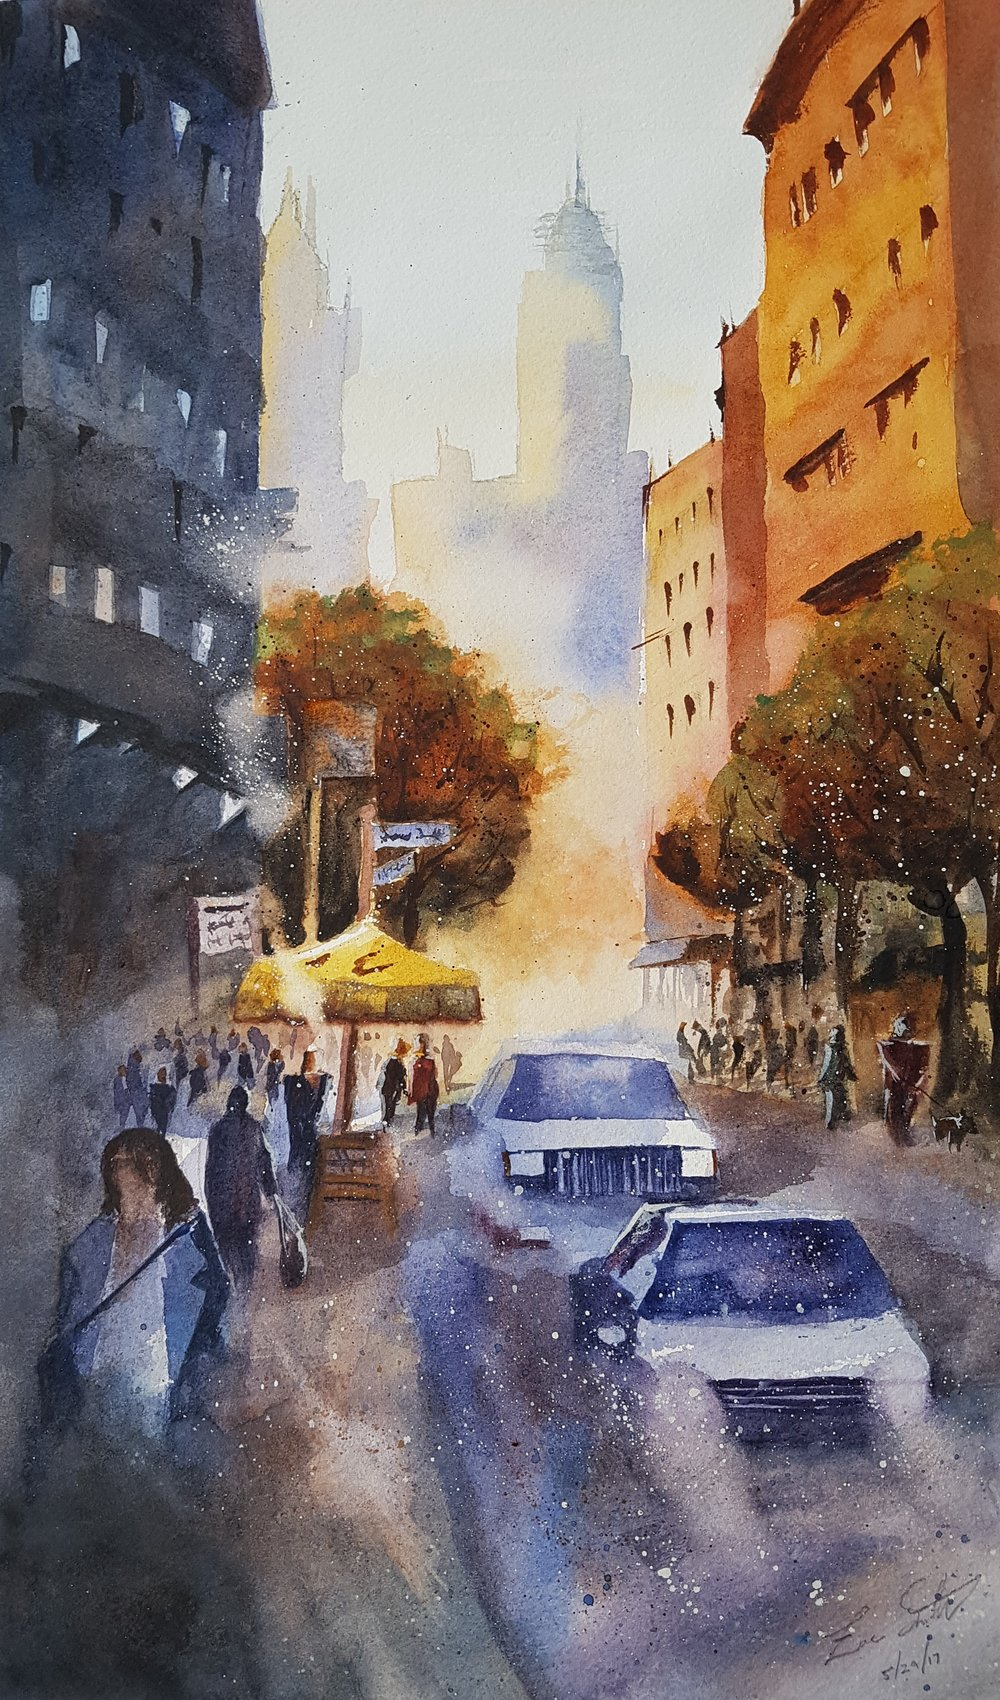 """NYC Morning"" 20x16  I painted this along with a watercolor demo by an artist named Iain Stewart. I noticed that he mainly painted with just three colors - blue, orange, and yellow - and I tried to keep to the spirit of the limited palate throughout the painting.  You can see more of Iain's art on his  Youtube channel , as well as his  website ."